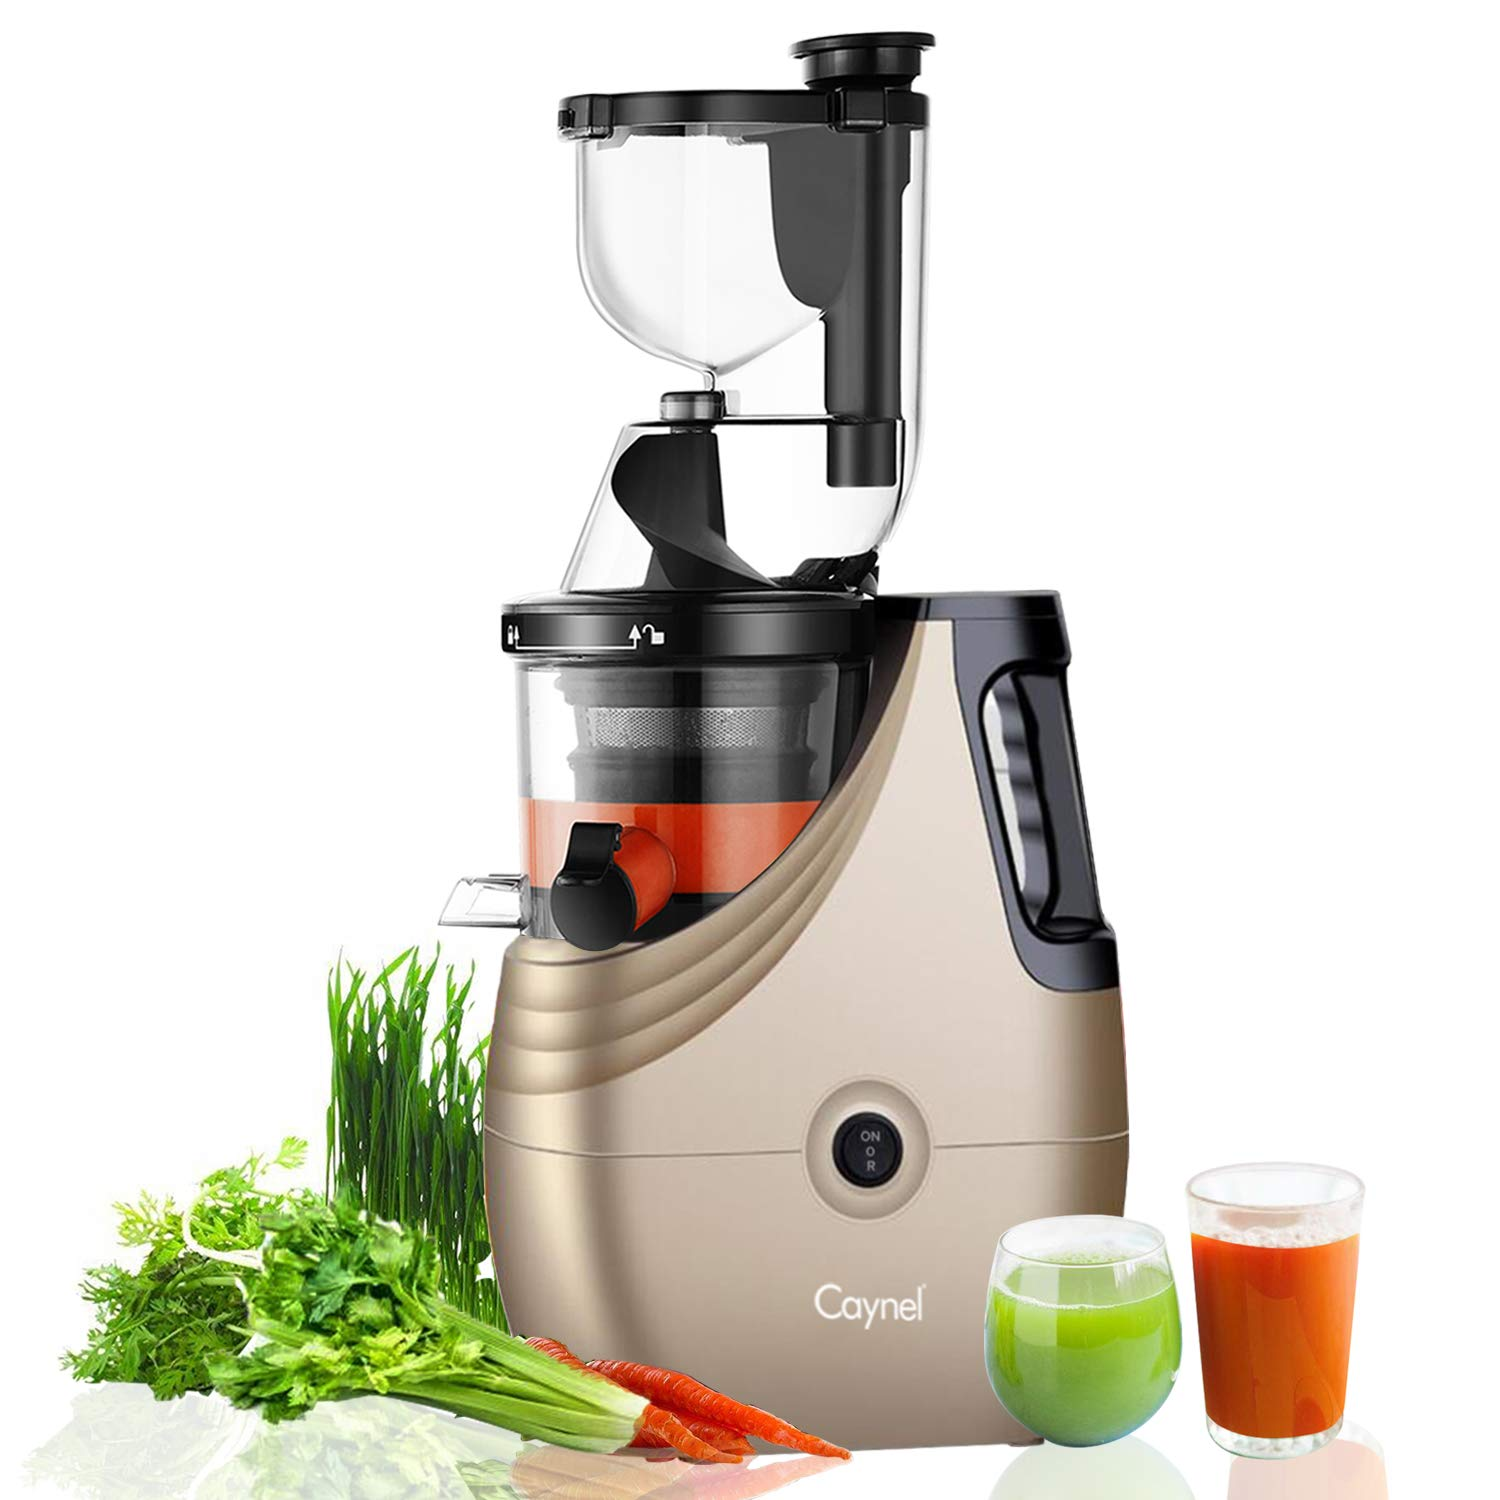 Caynel Slow Masticating Juice Extractor,Cold Press Juicer Machine with 3'' Wide Chute for Fruit and Vegetable,High Yield Vertical Juicer,BPA Free(Champagne) by CAYNEL